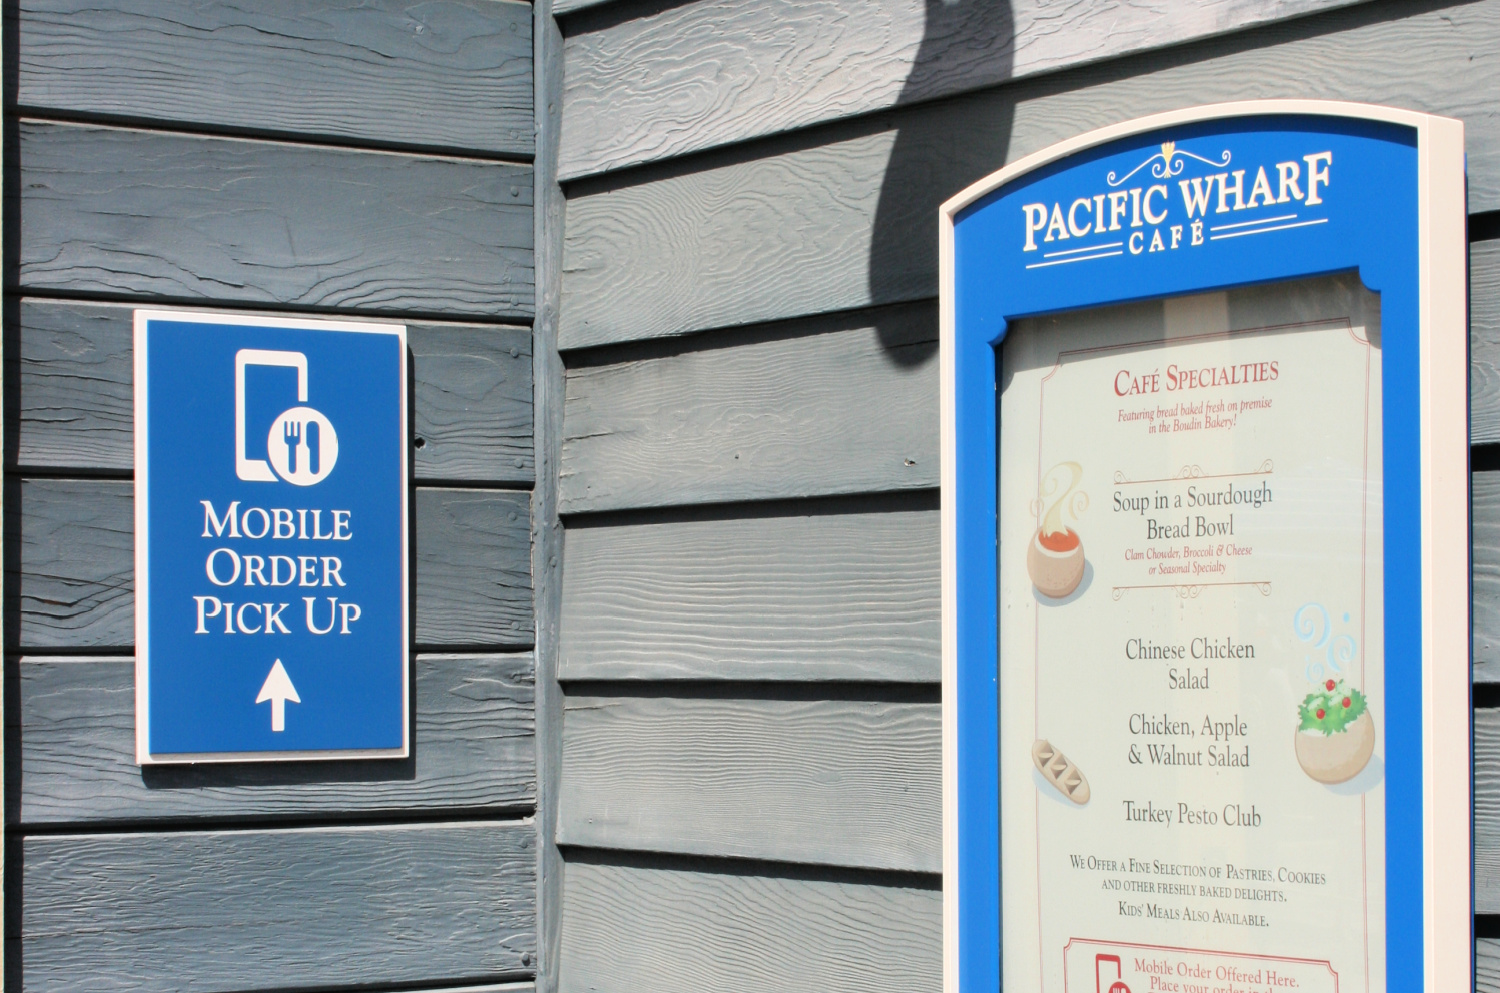 Mobile ordering sign next to Pacific Wharf menu